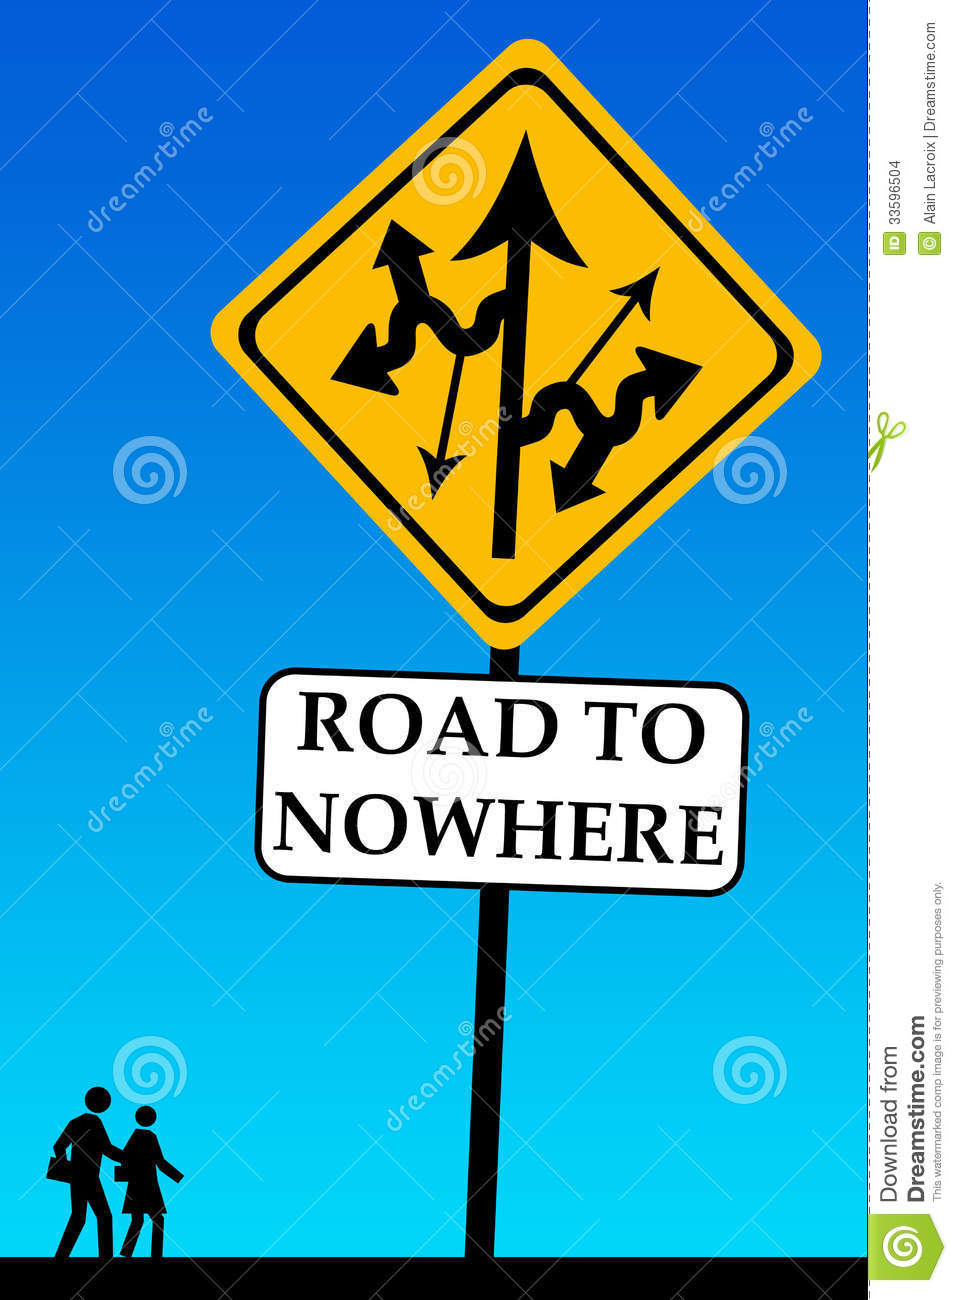 Go To Www Bing Comhella Www Bing Com: Road To Nowhere Stock Illustration. Illustration Of Change